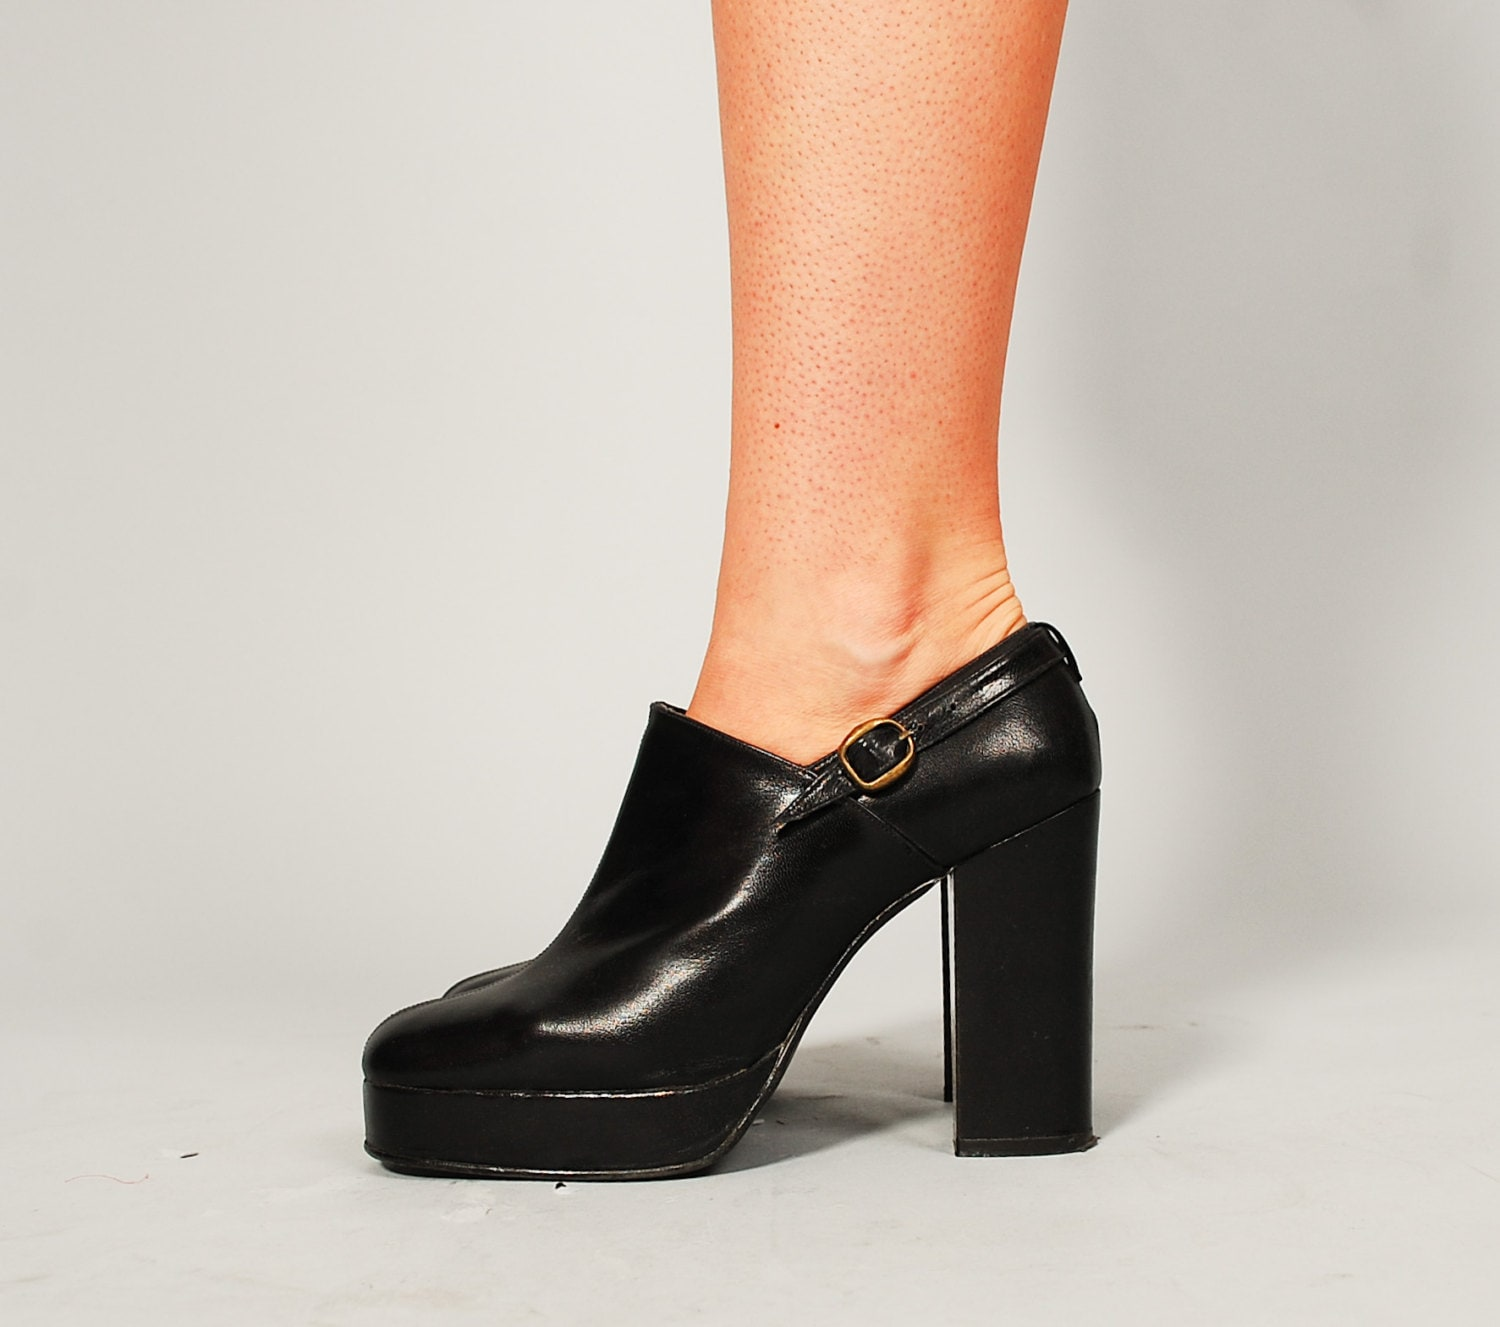 1970s platform shoes 70s leather shoes keep the tempo